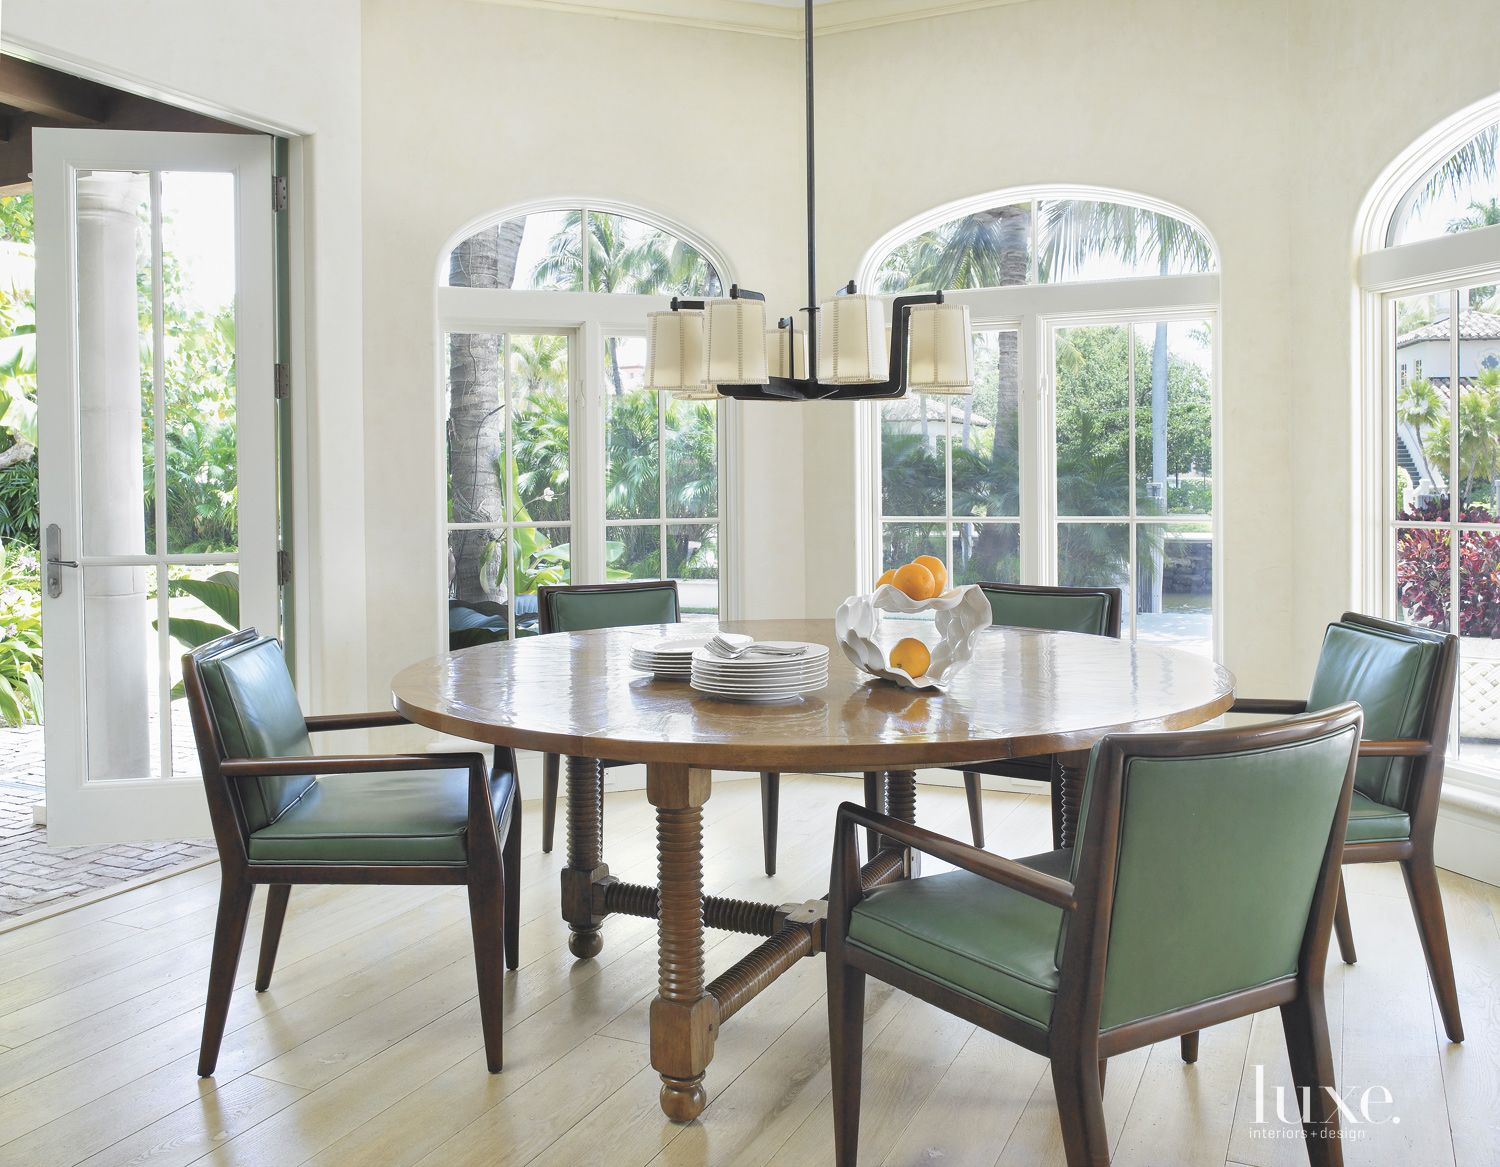 Traditional White Breakfast Area with Arched Windows